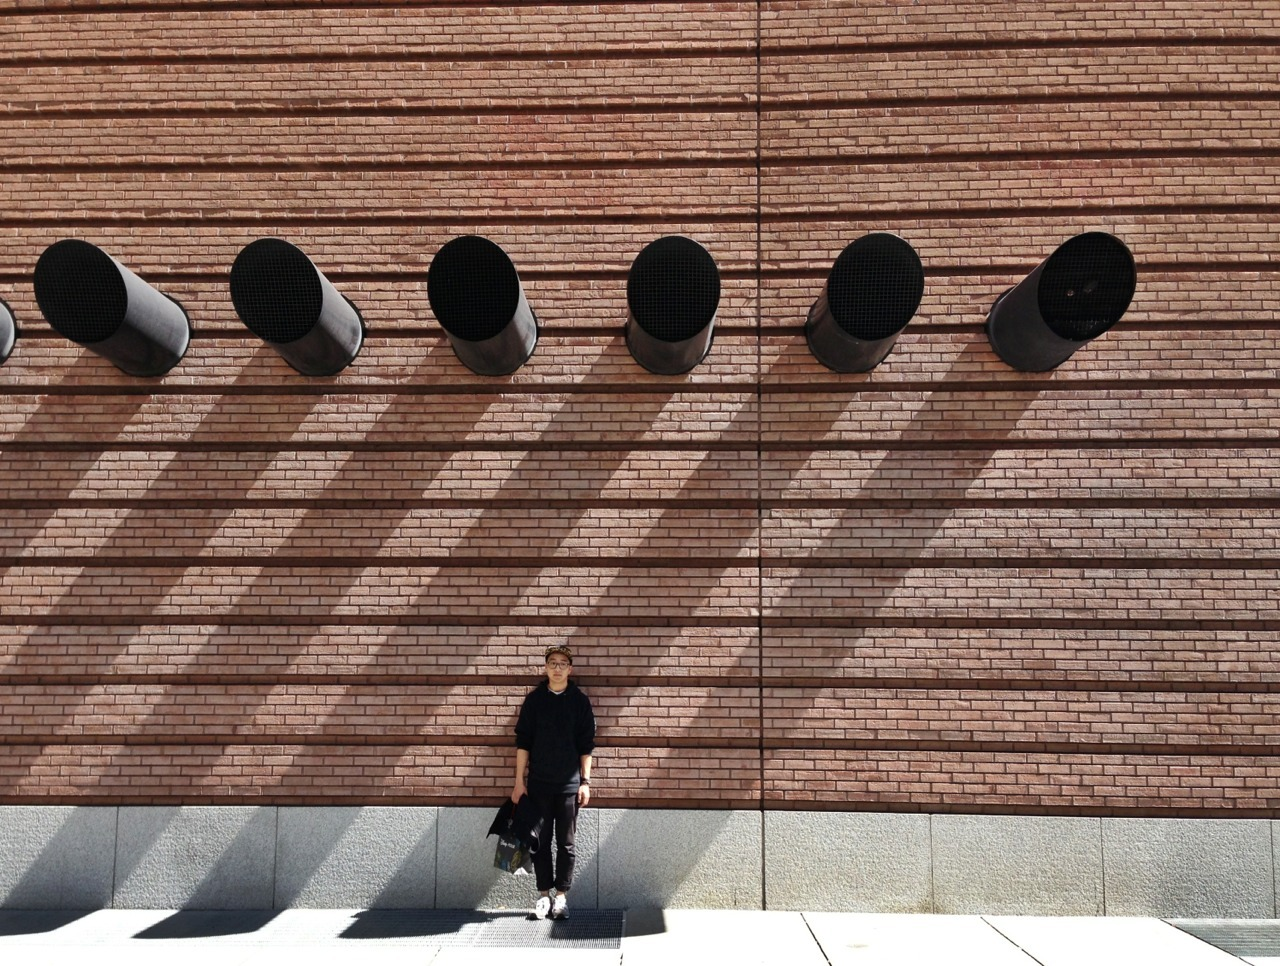 Daniel outside of SFMoMA